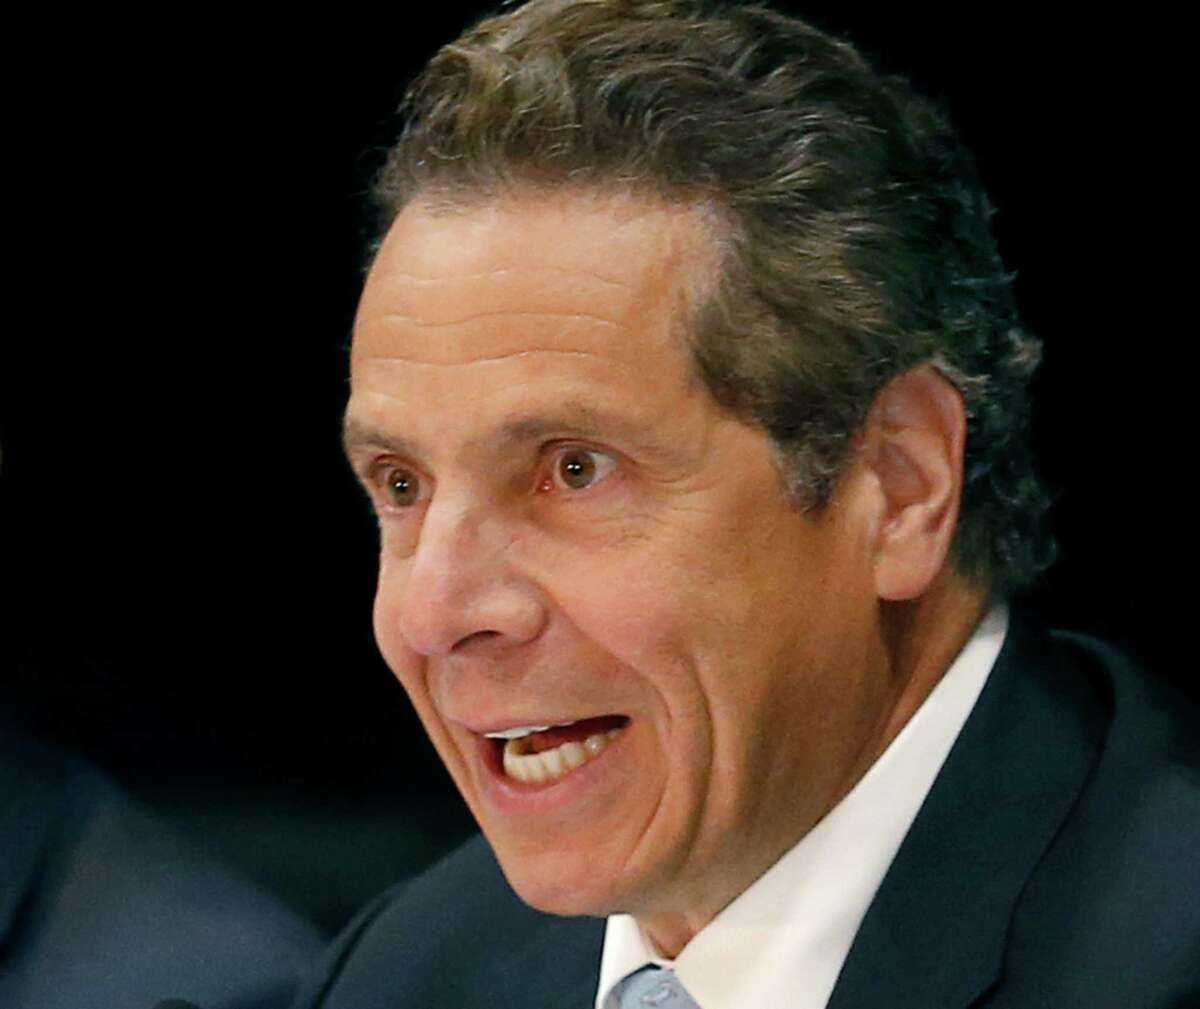 FILE - In this July 9, 2015 file photo, Governor Andrew Cuomo speaks in Rochester, N.Y., on poverty and economic development during his